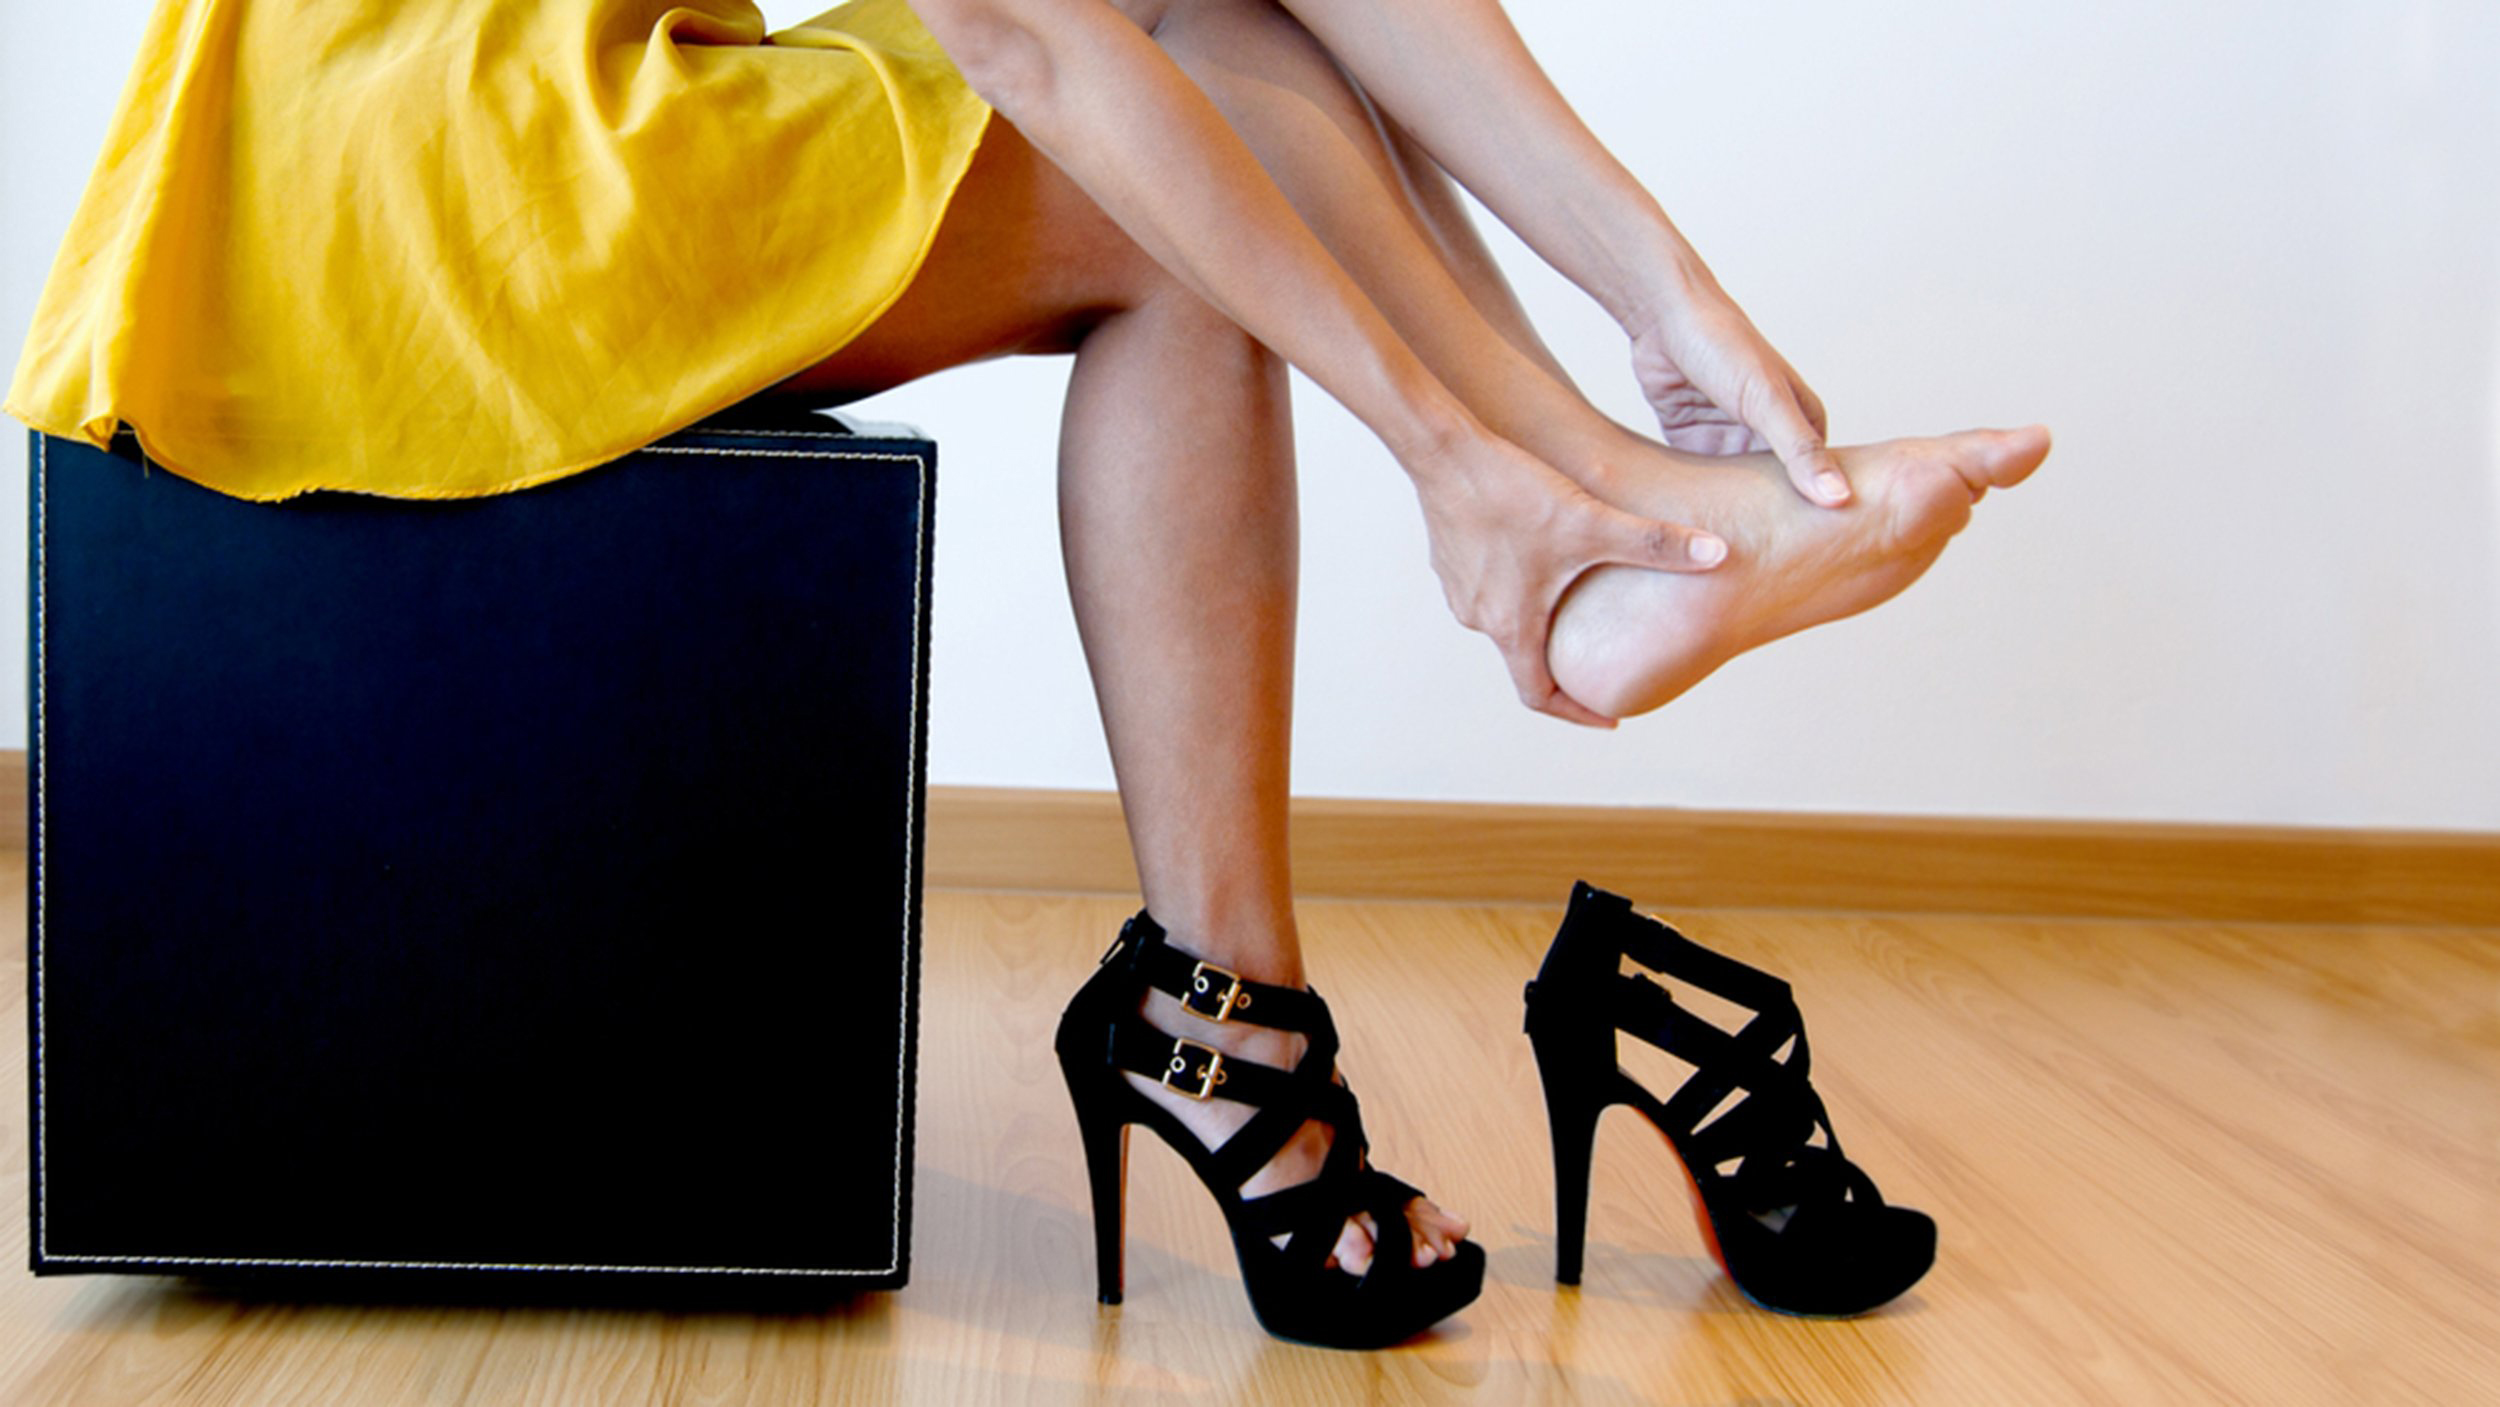 a991278c88e3 How bad are high heels for your feet